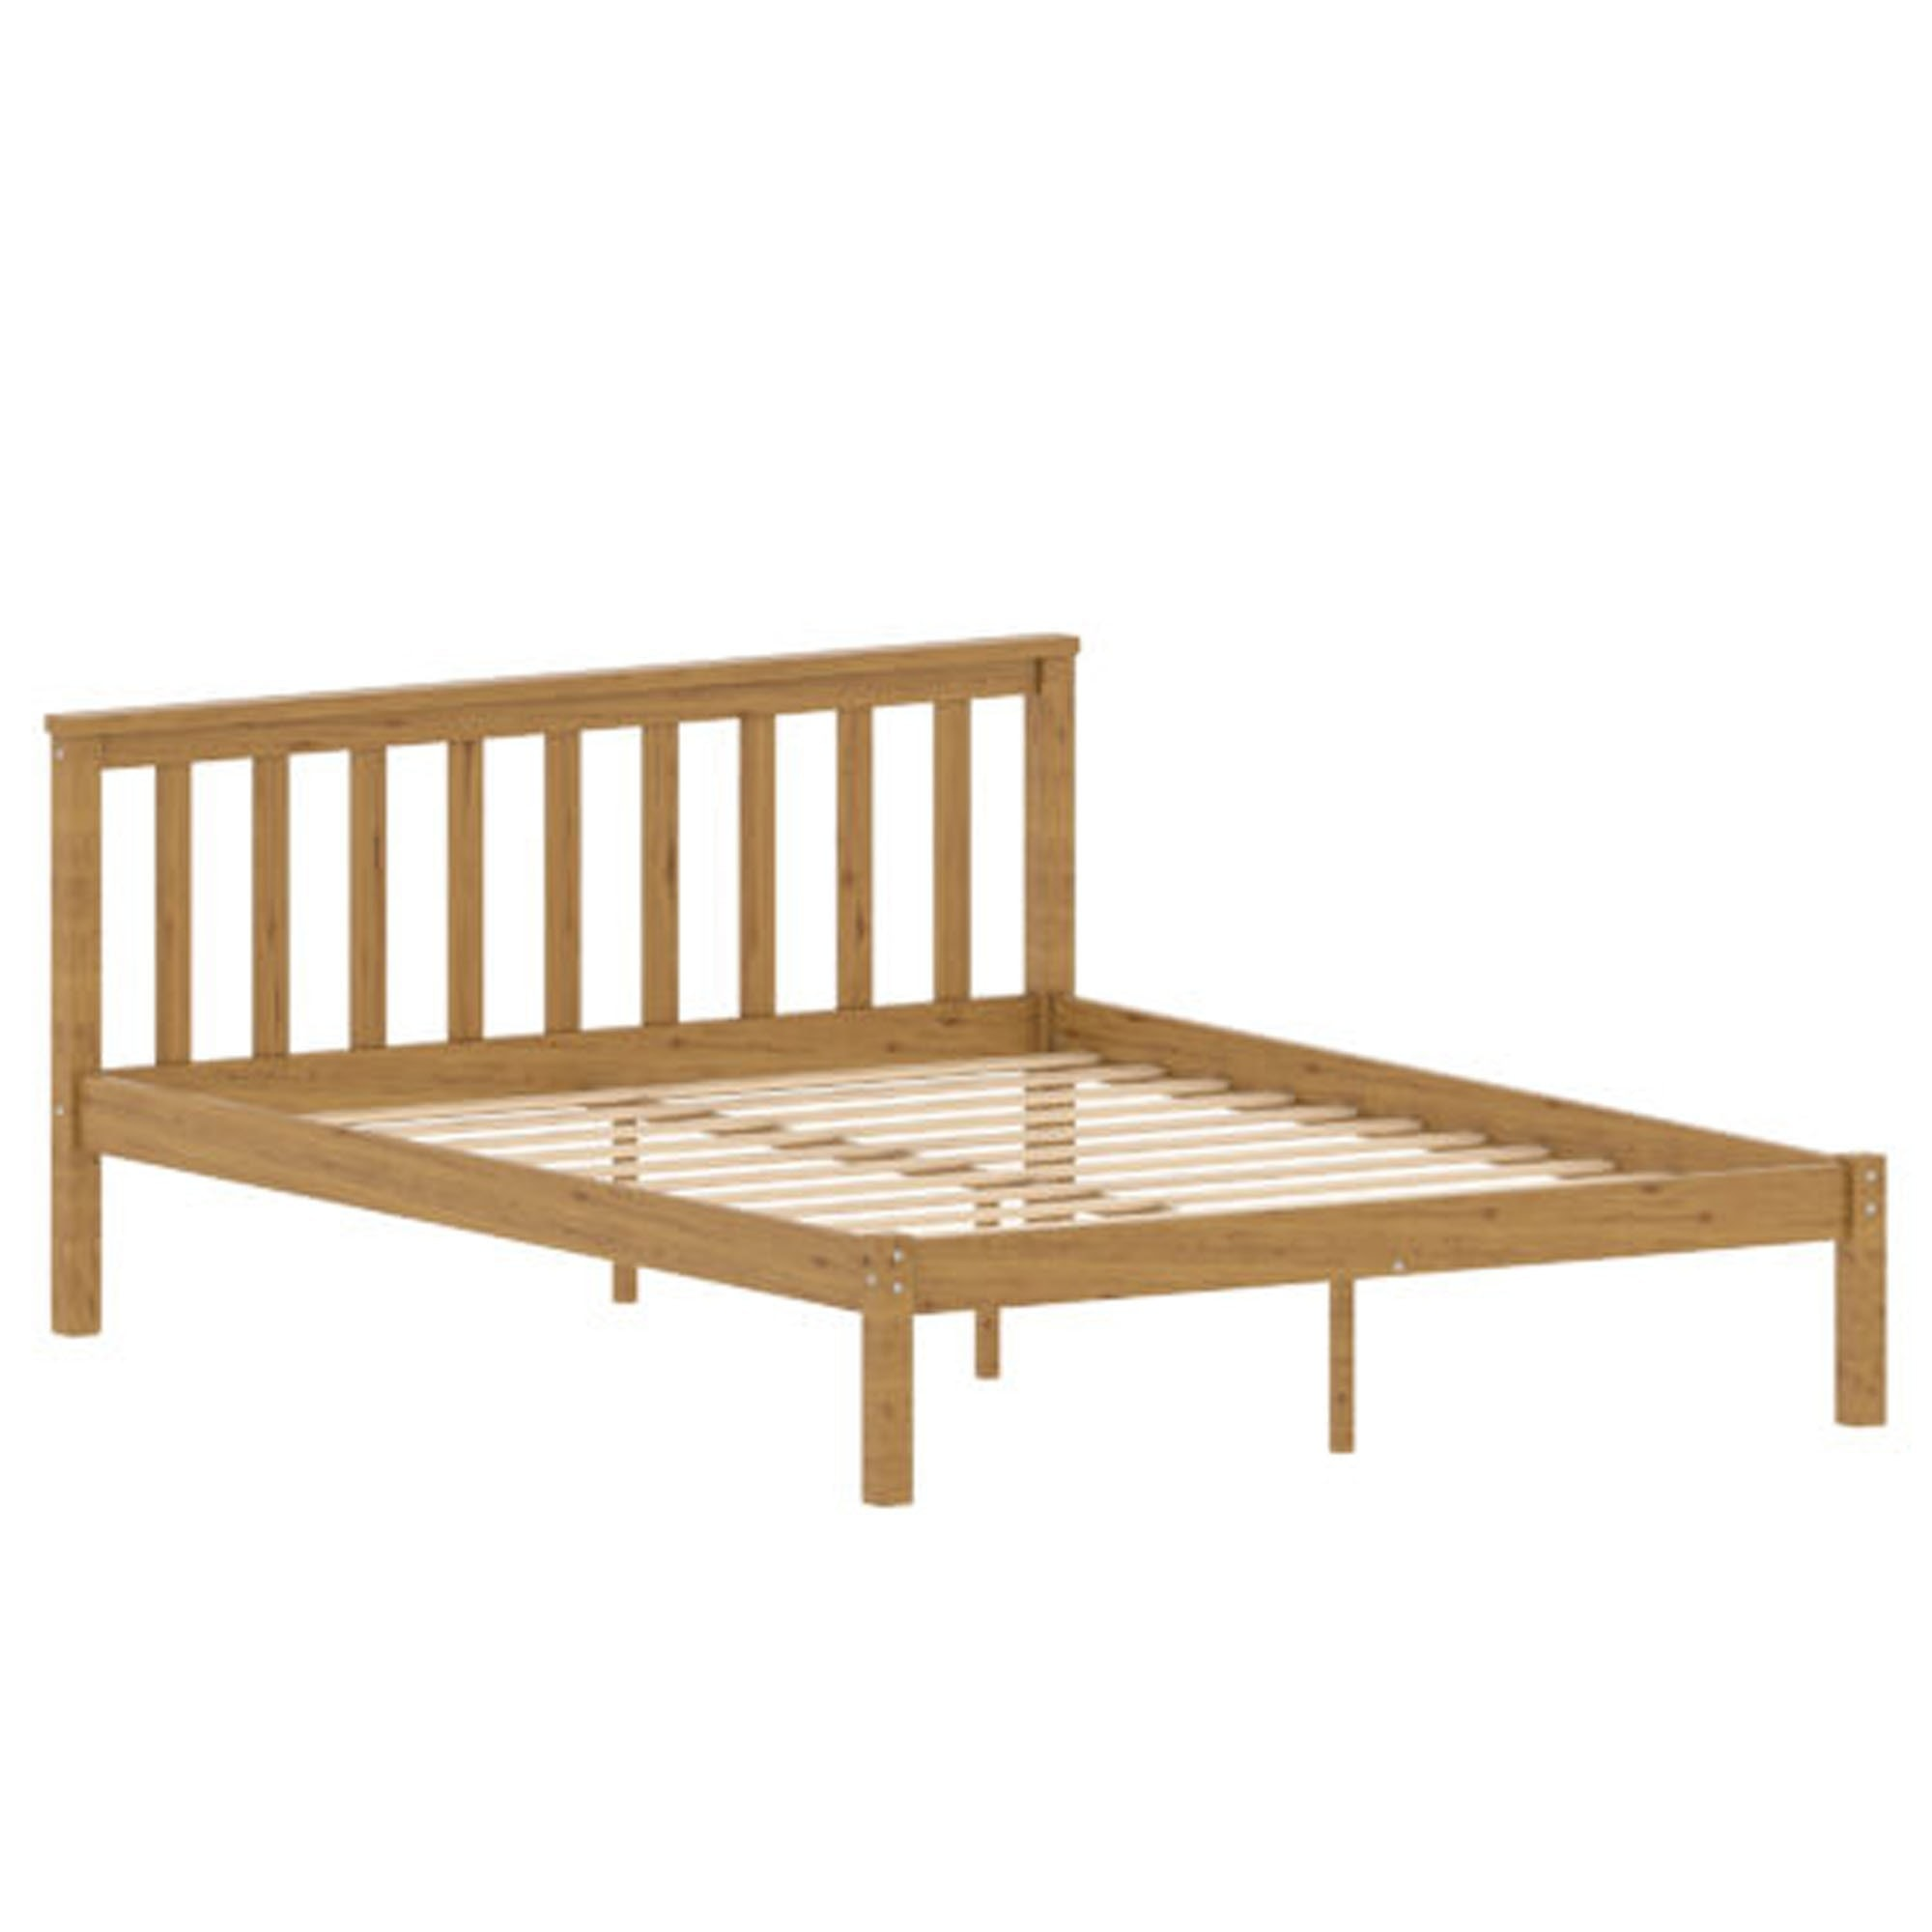 Sydney Pine King Size Wooden Bed Wooden Modern Beds